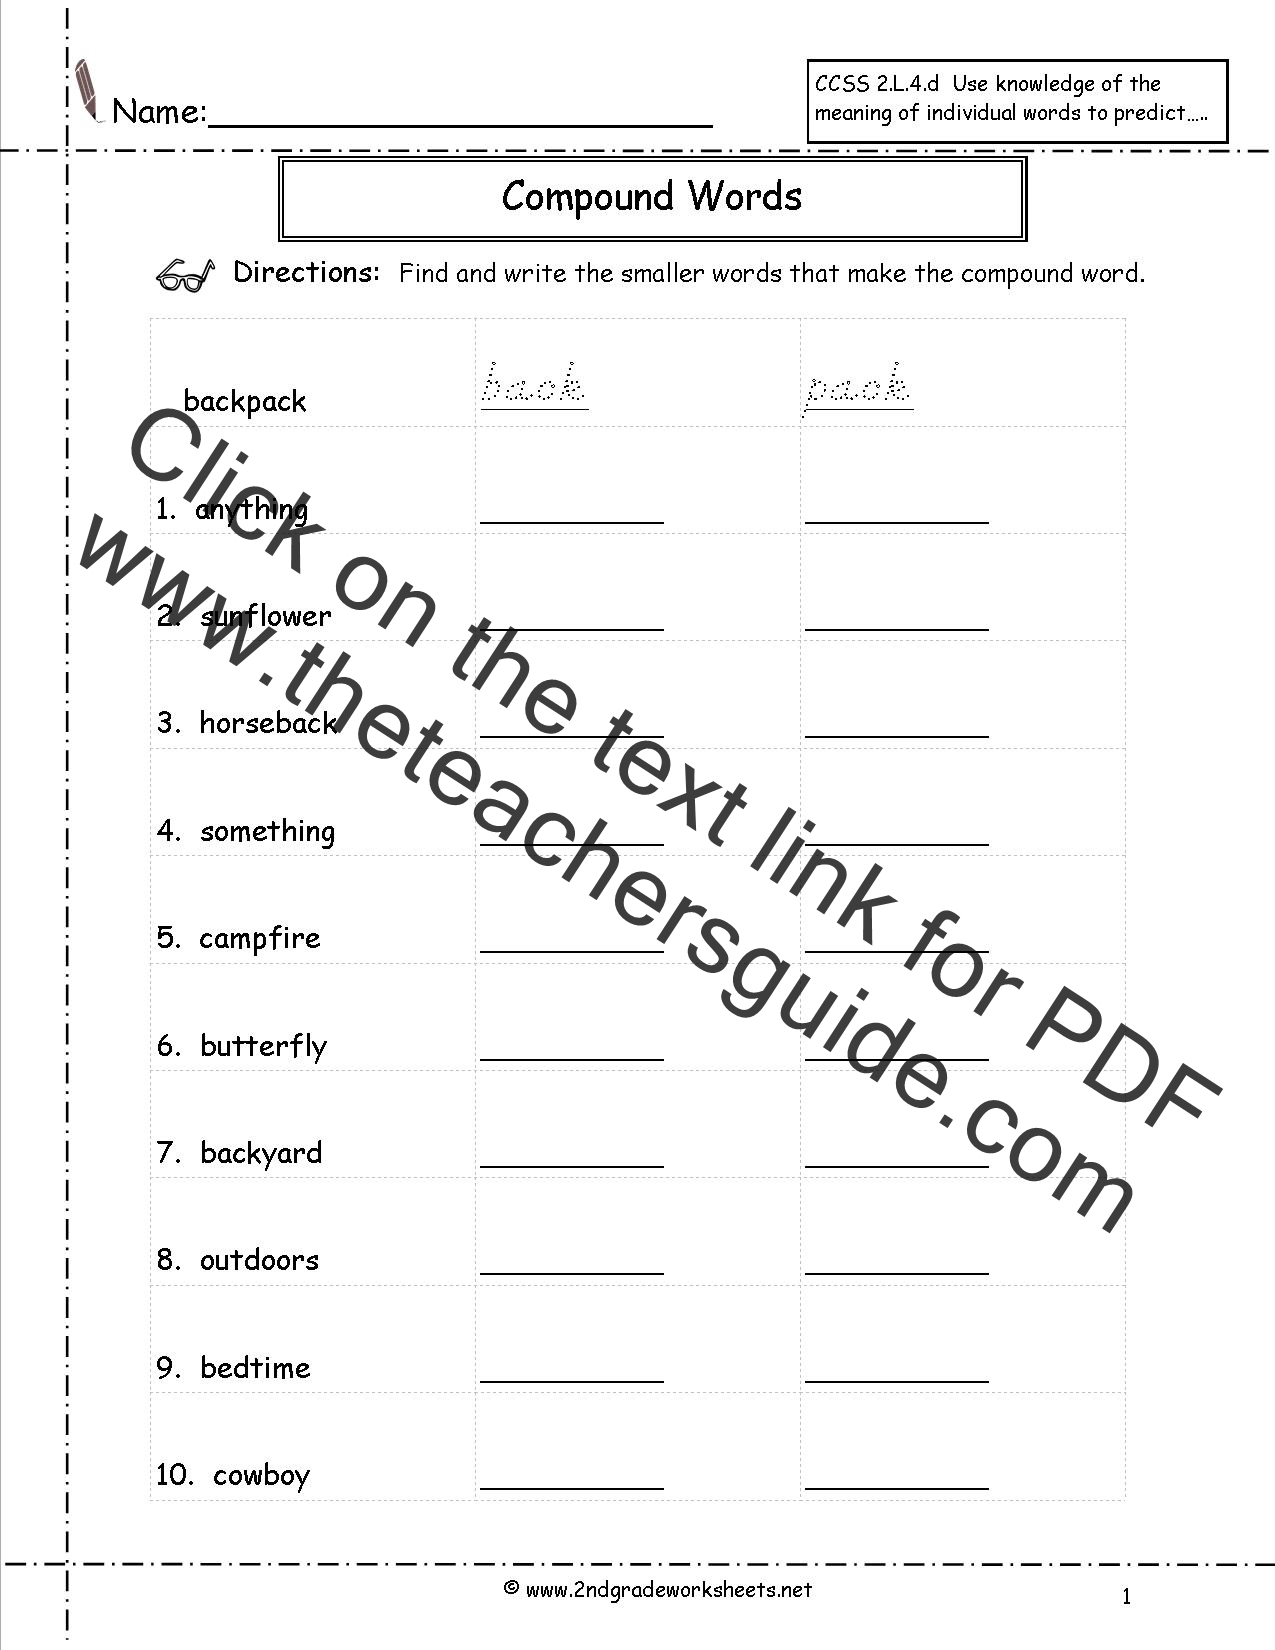 Worksheet Second Grade Printable Worksheets free languagegrammar worksheets and printouts compound words worksheets